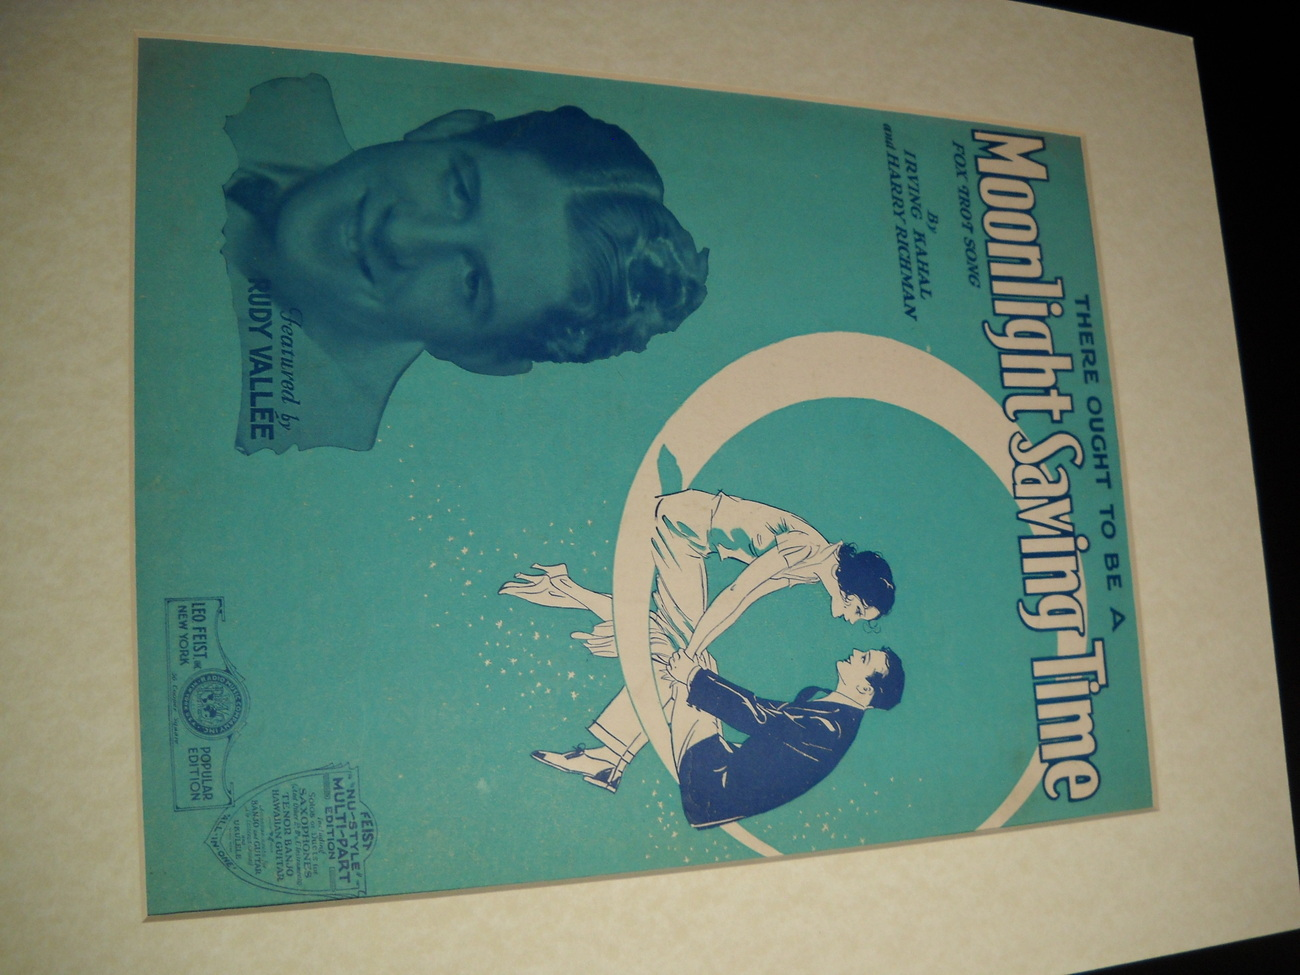 Sheet_music_moonlight_saving_time_rudy_vallee_kahal_richman_1931_leo_feist_09